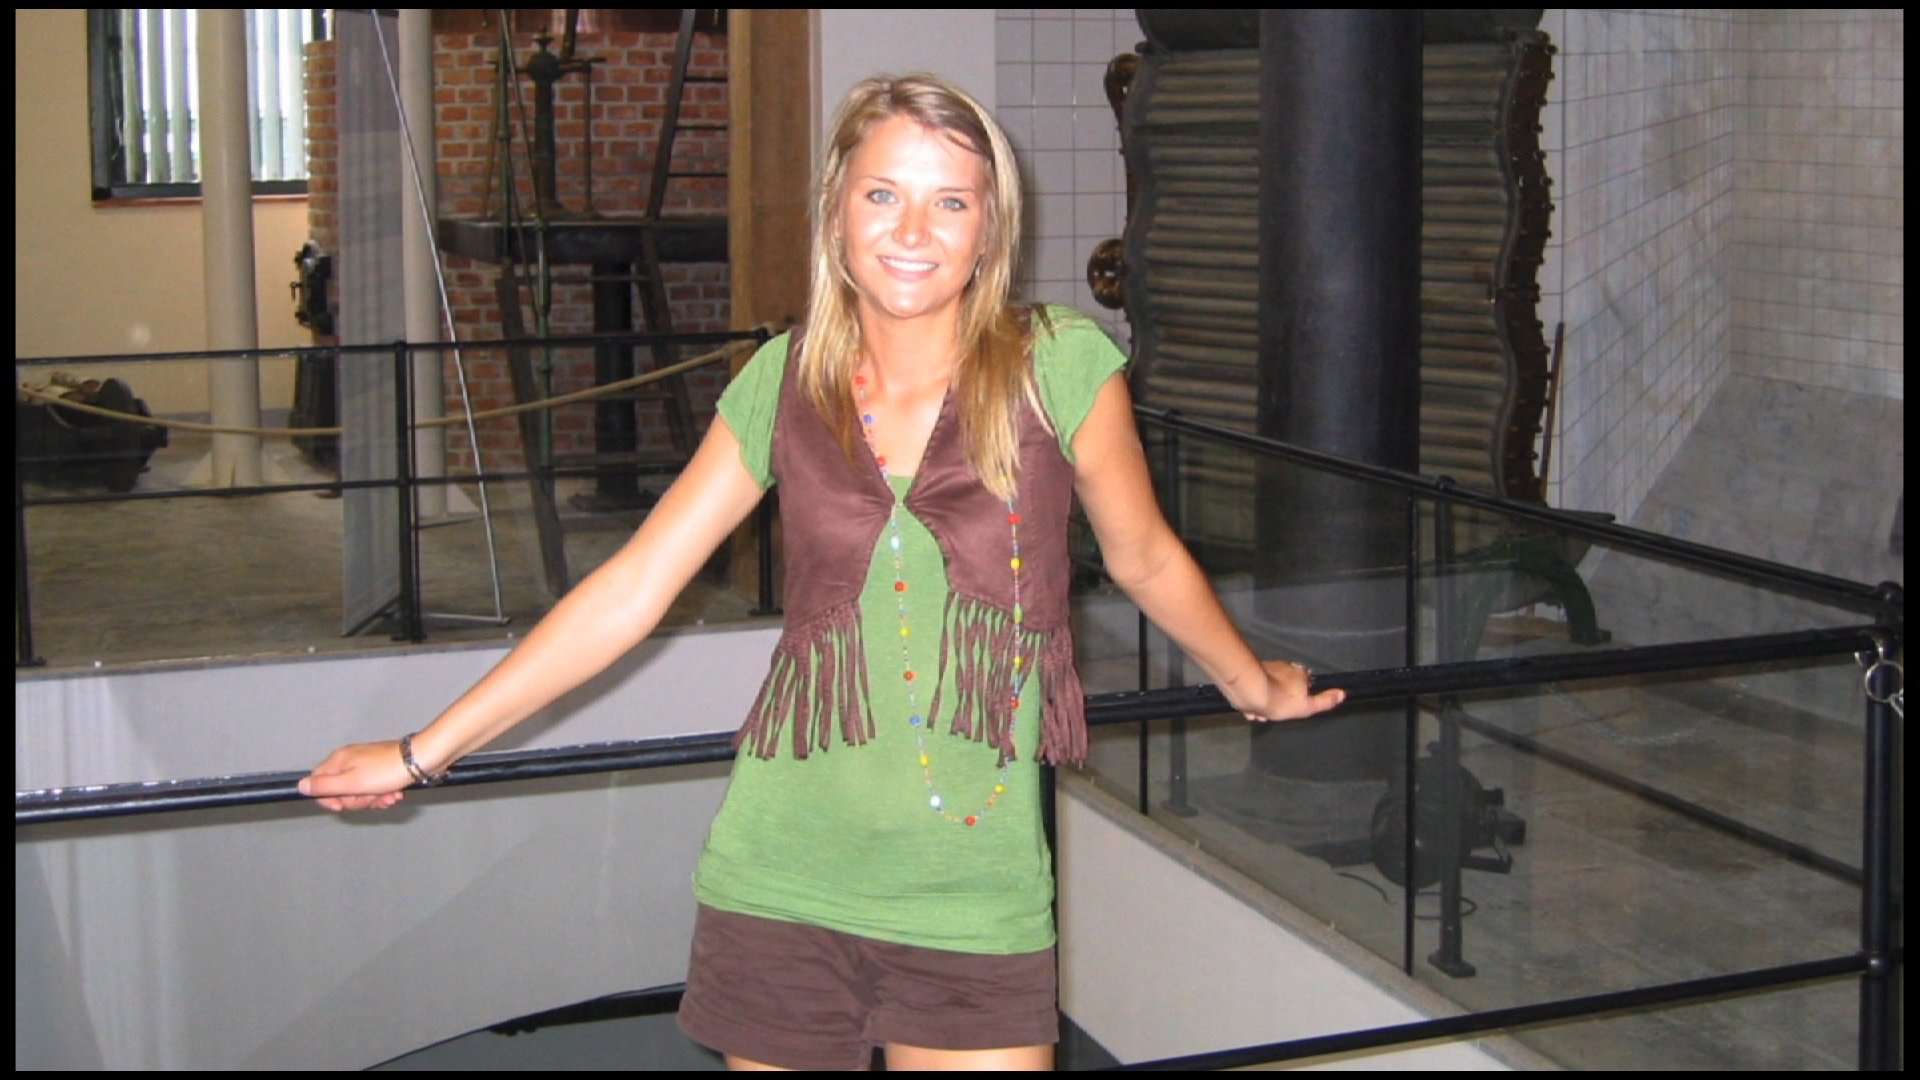 Victim of flesh-eating bacteria, Aimee Copeland, to be released from hospital